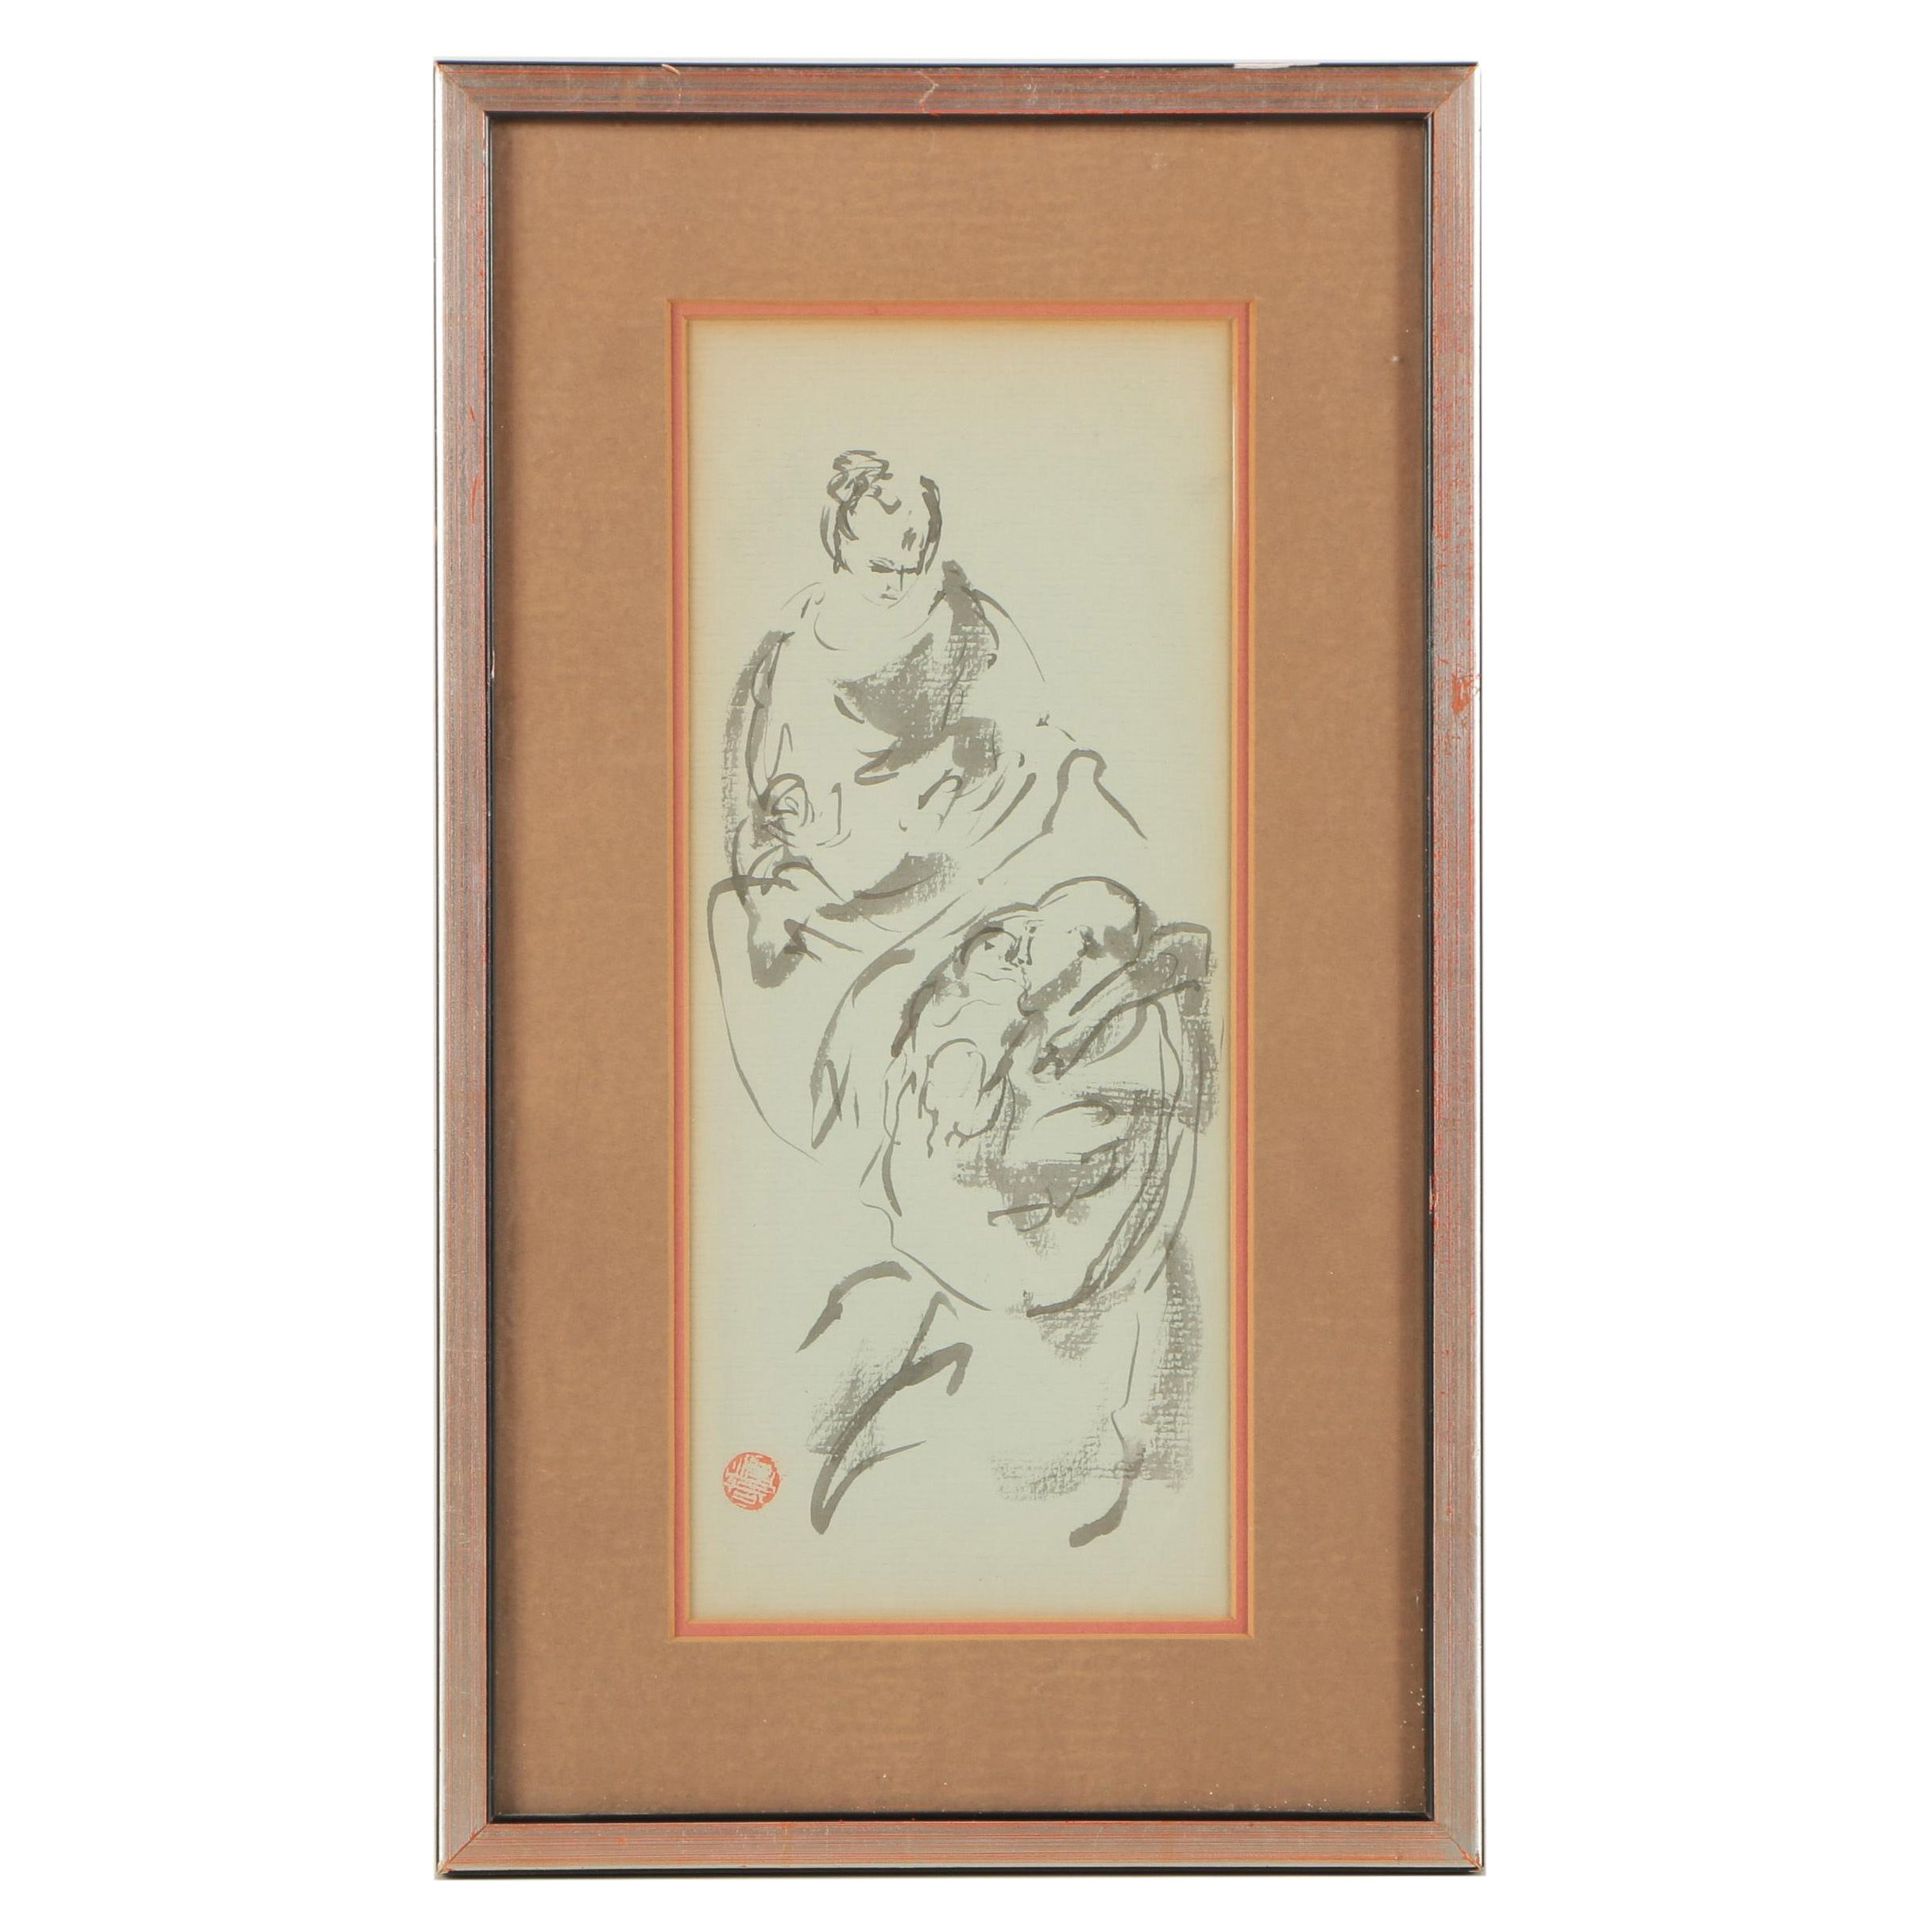 East Asian Style Figural Ink Painting on Rice Paper